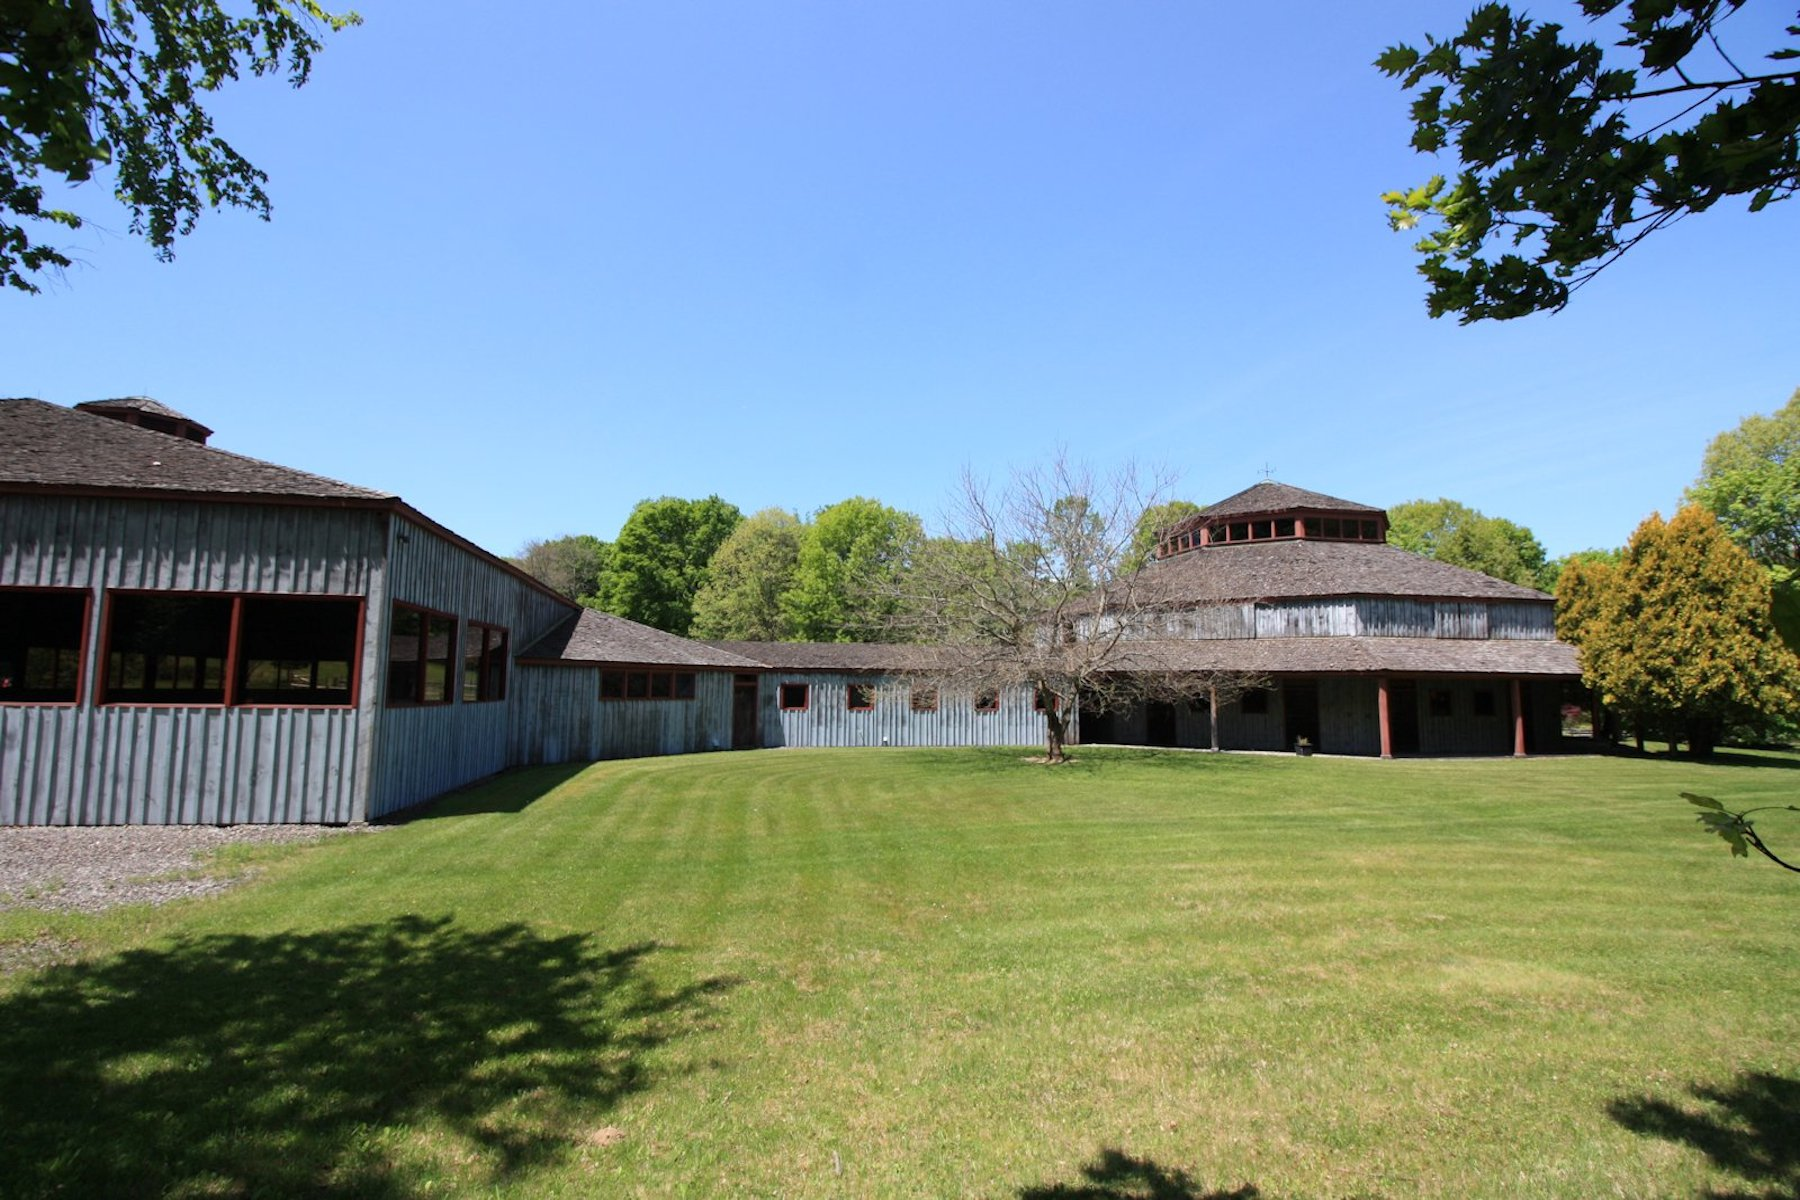 Additional photo for property listing at Dundee Farm 400-424 New Salem Rd Kingston, New York 12429 United States